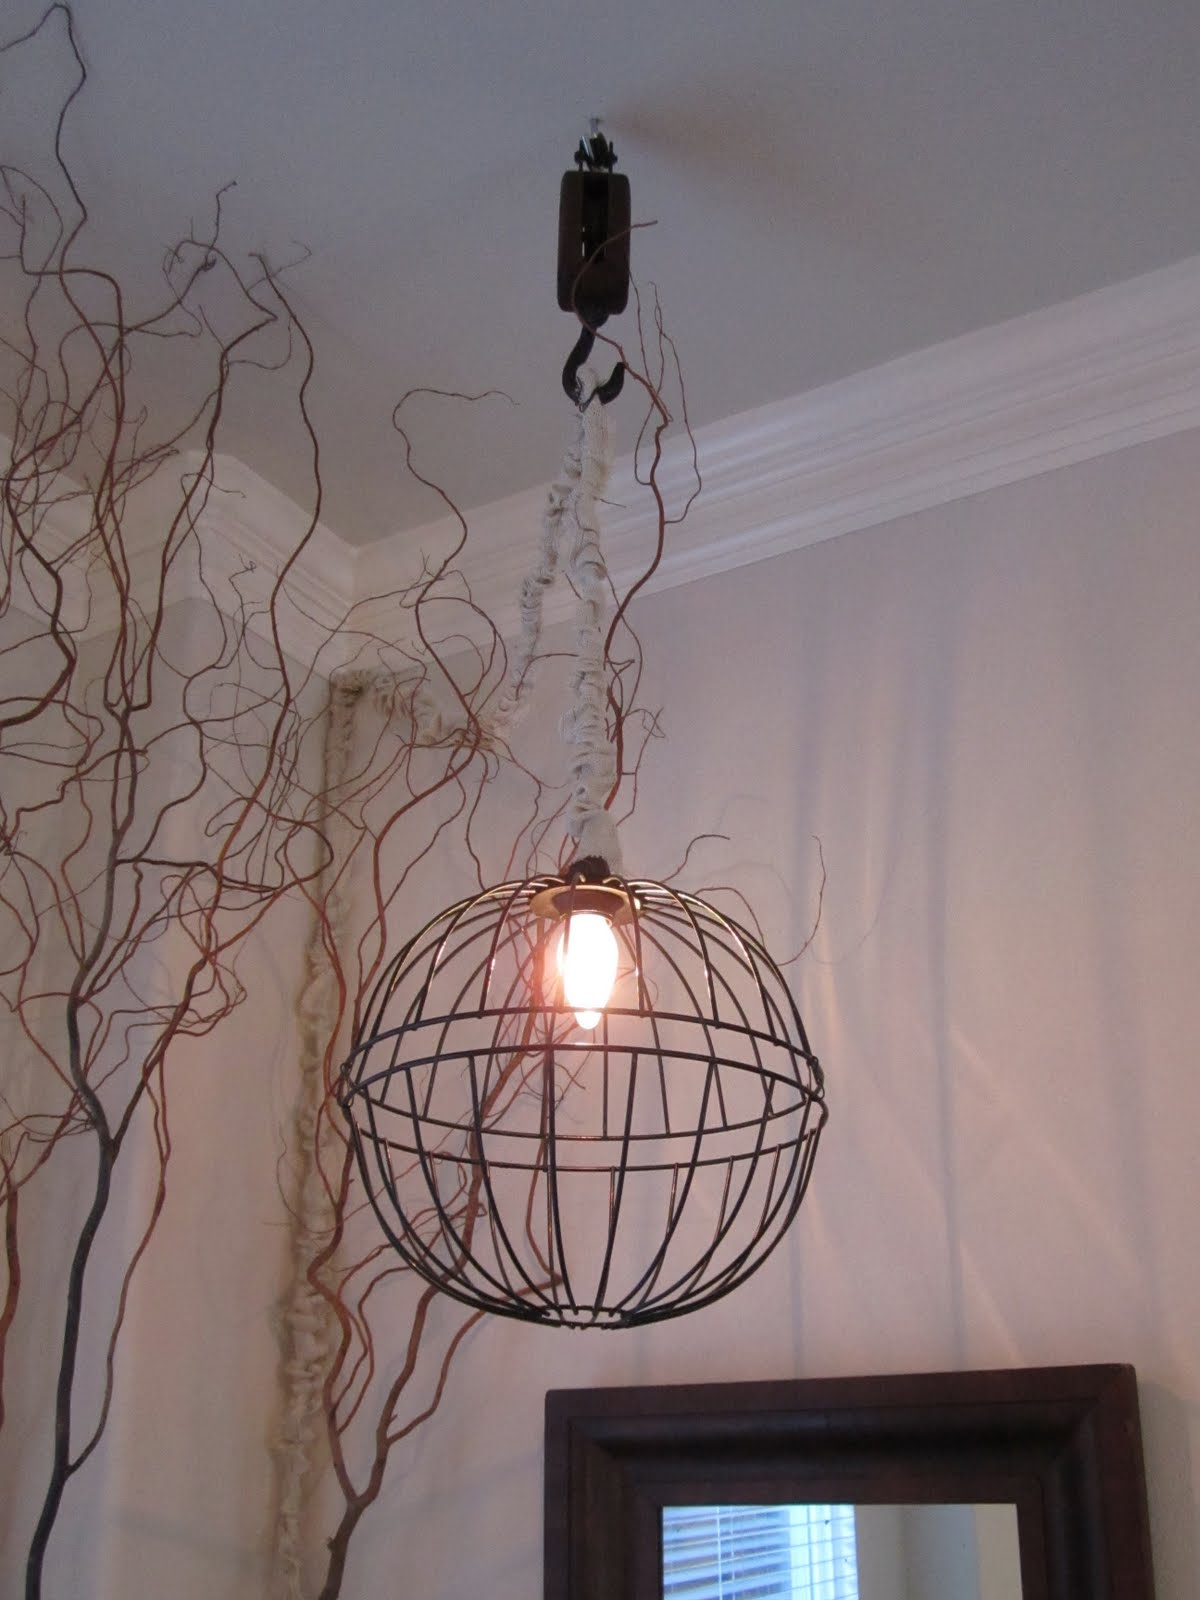 anythingology how to make a metal hanging light rh anythingologyblog blogspot com Wire Mesh Light Fixtures Wire Dome Pendant Light